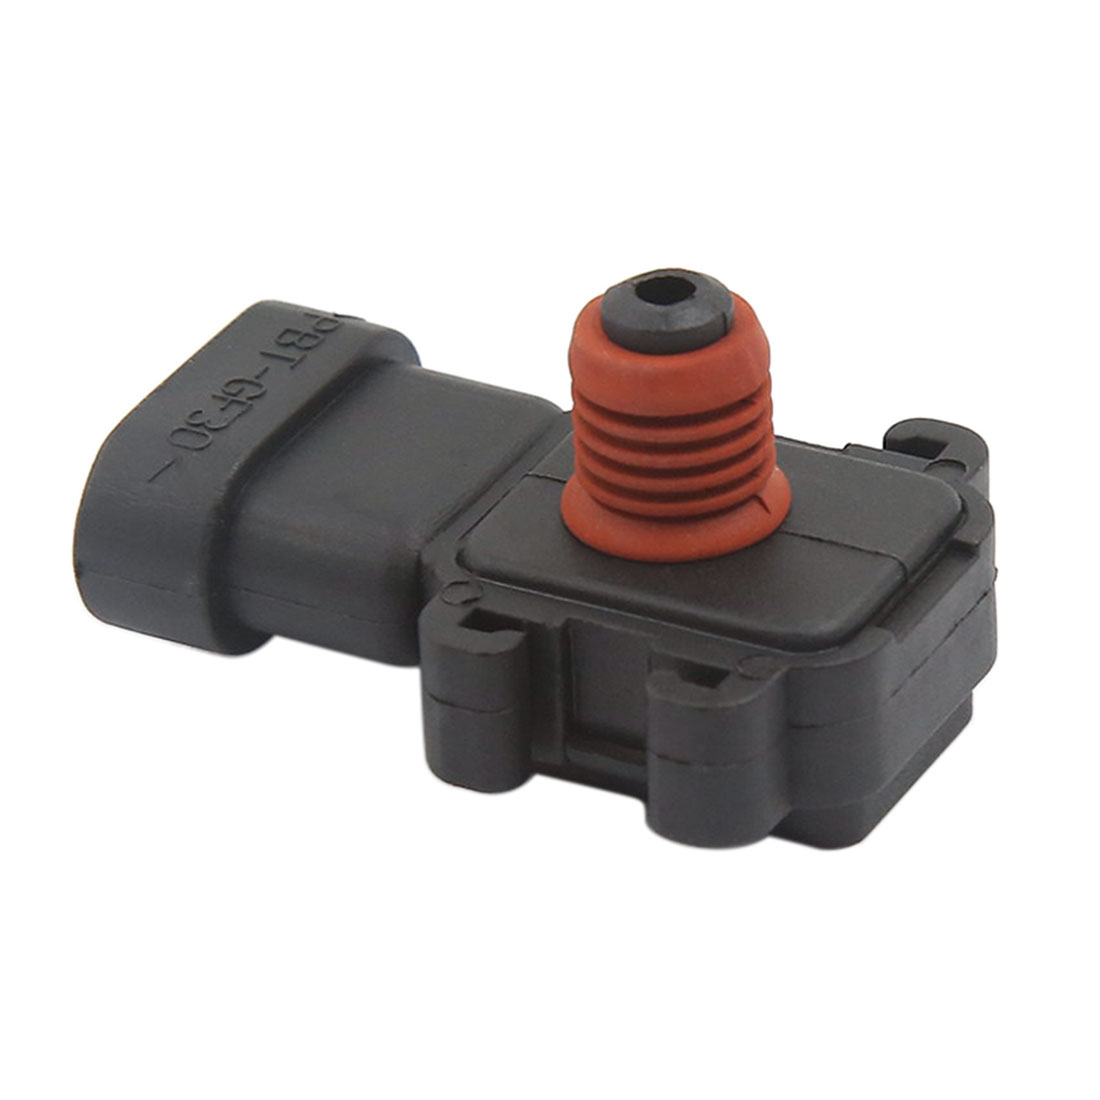 New 09359409 Manifold Absolute Pressure Map Sensor For Buick Cadillac Chevrolet